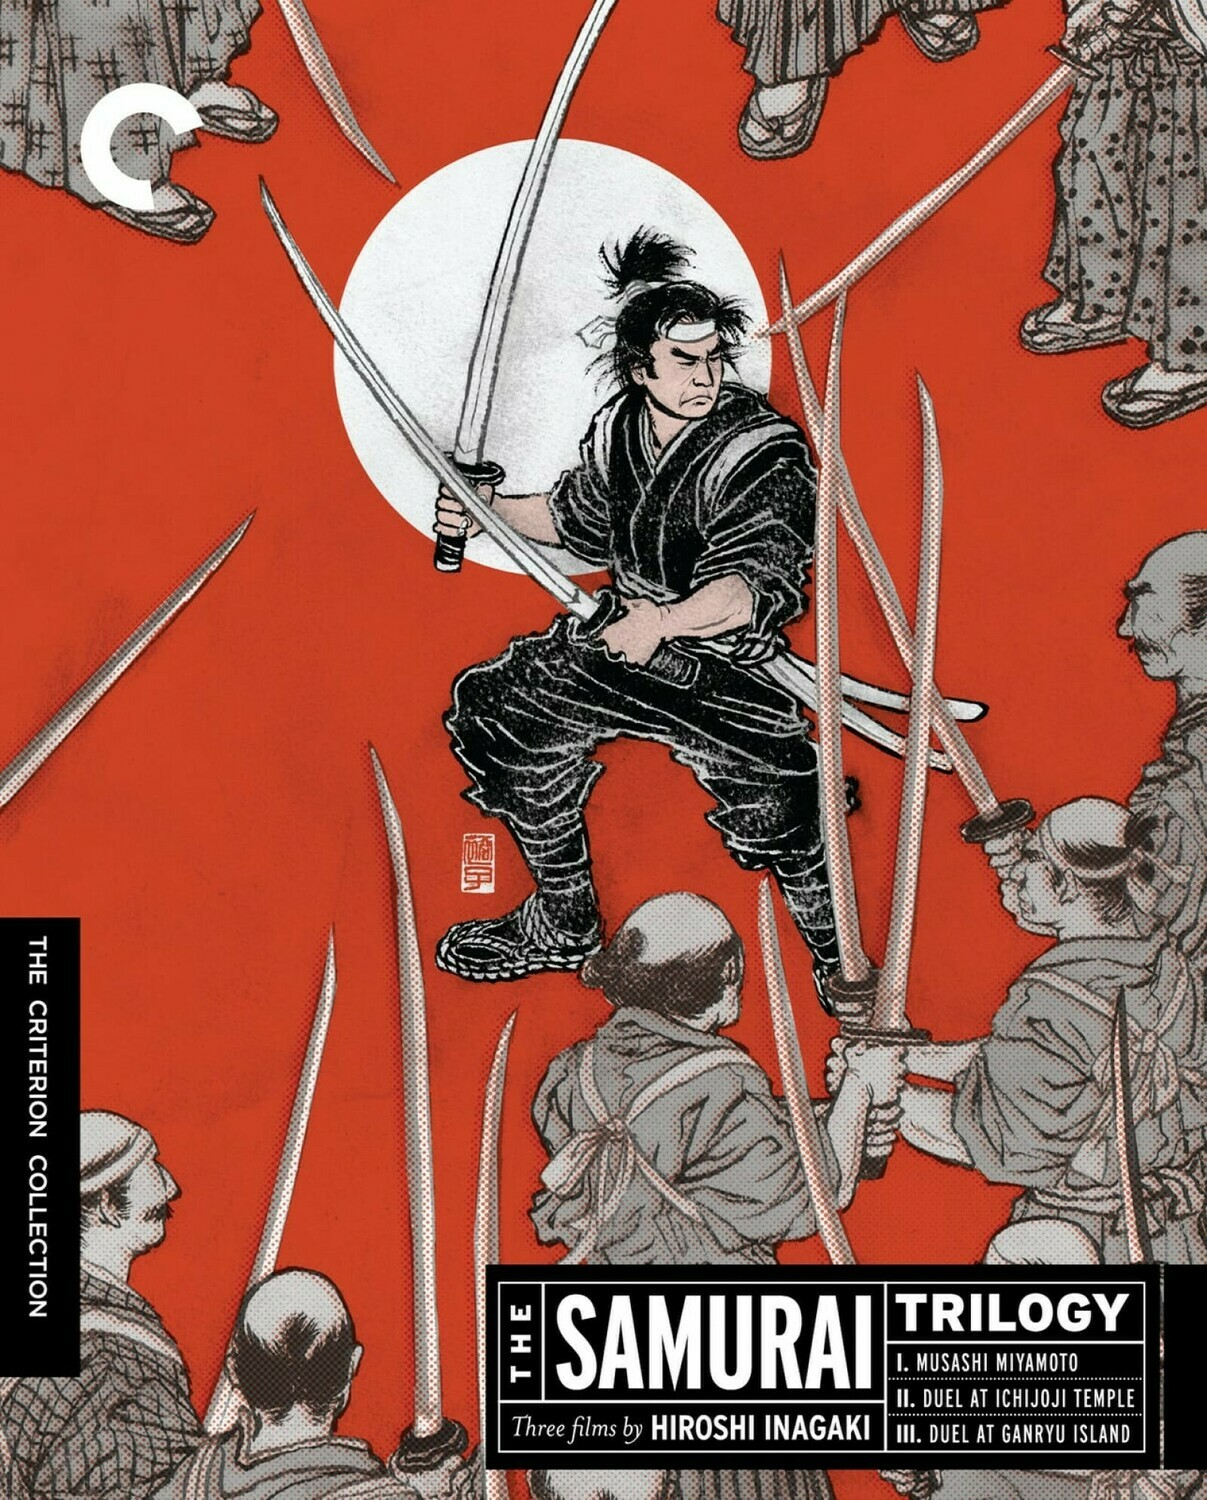 THE SAMURAI TRILOGY - BLURAY